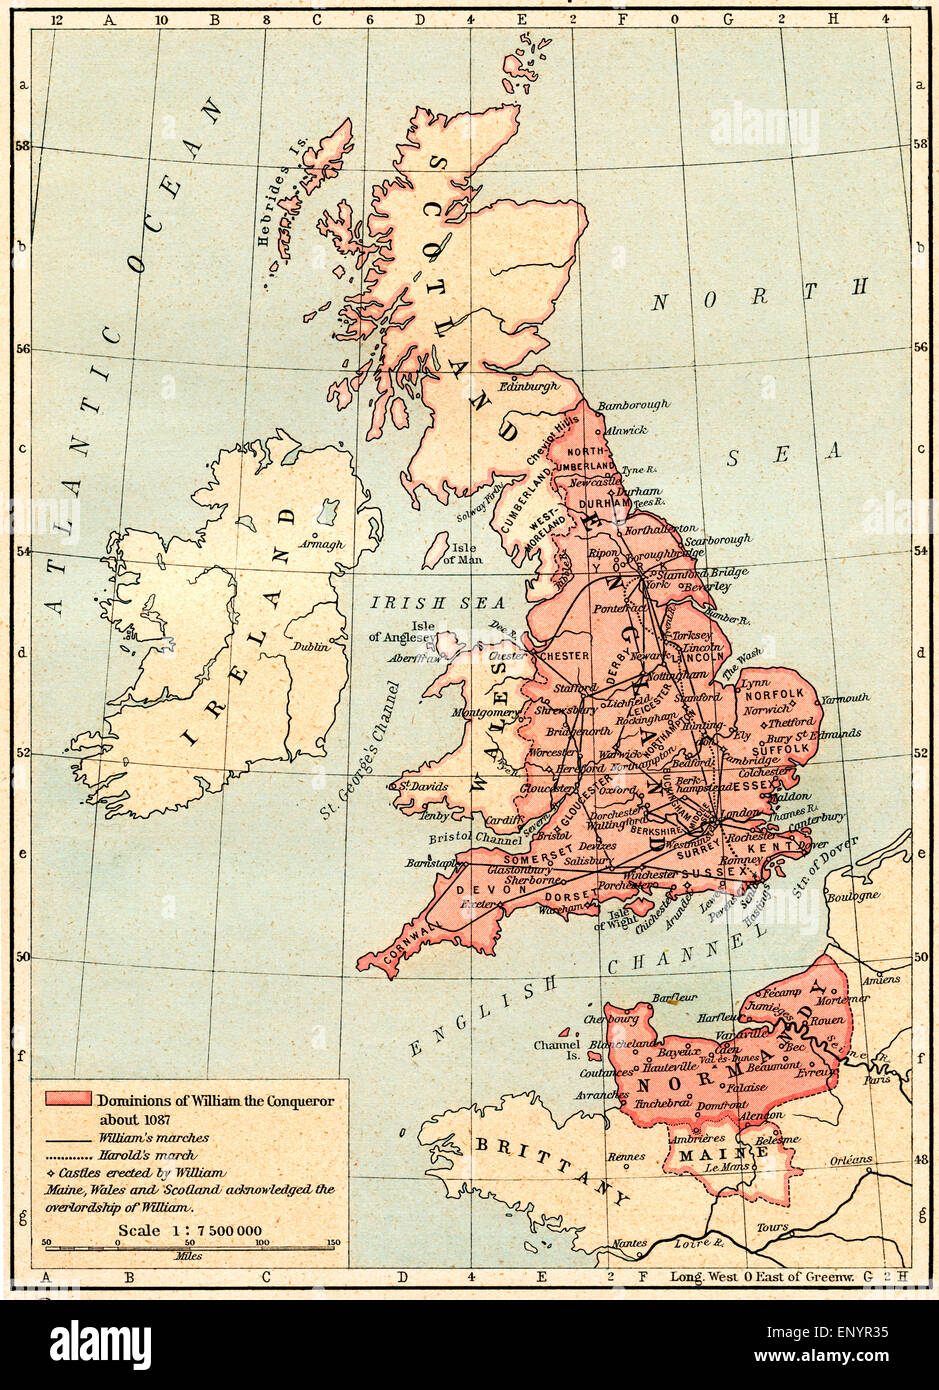 Map of Great Britain showing the dominions